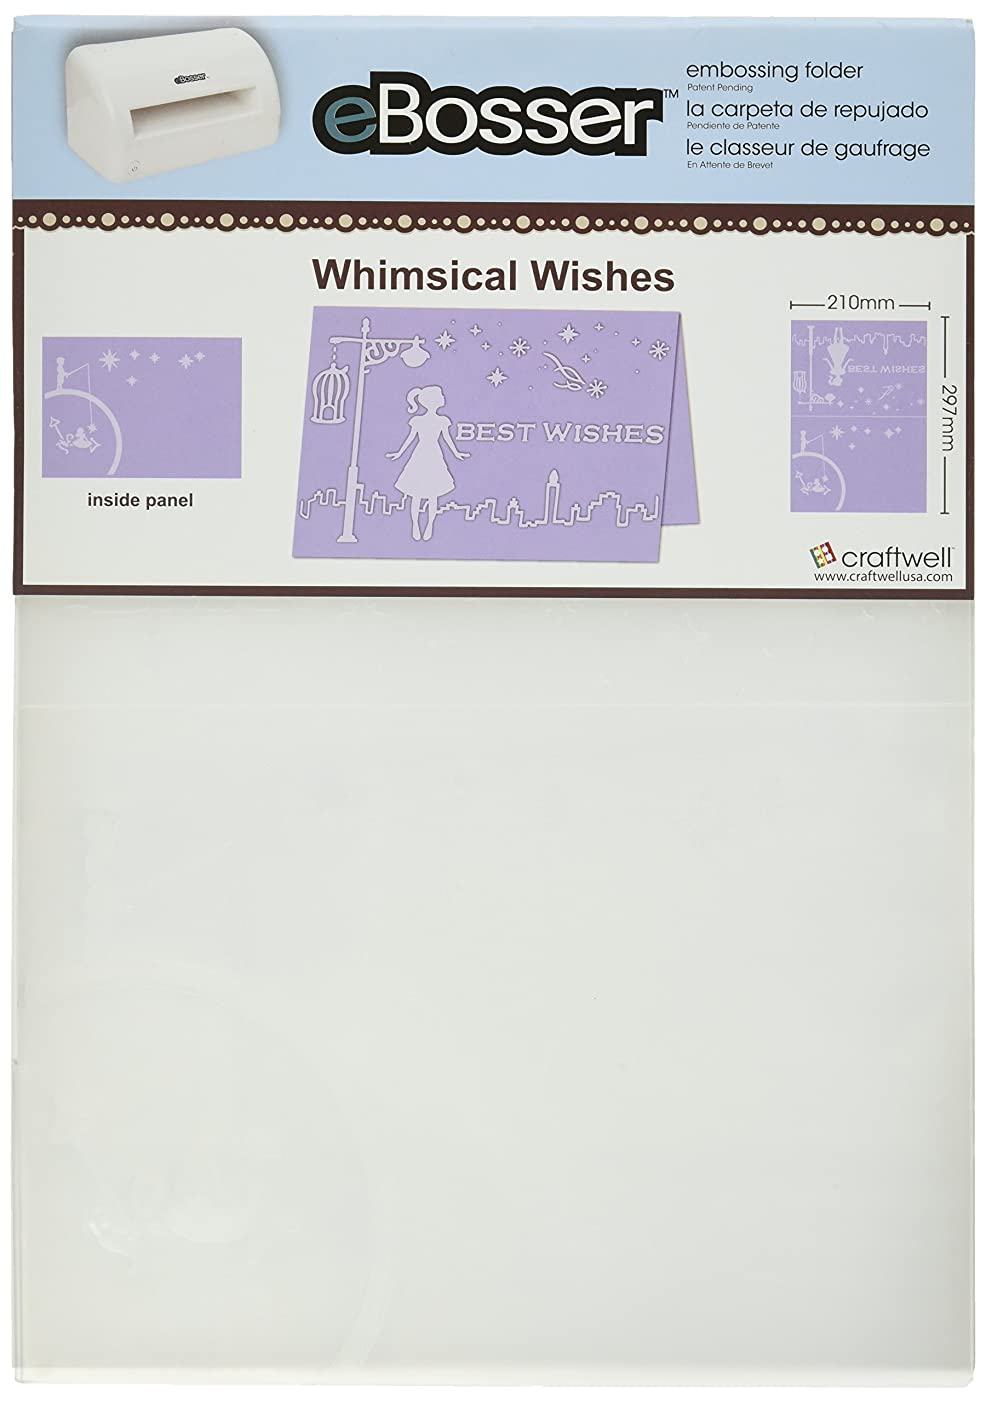 Craftwell USA Whimsical Wishes Embossing Folder, 8.27 by 11.69-Inch